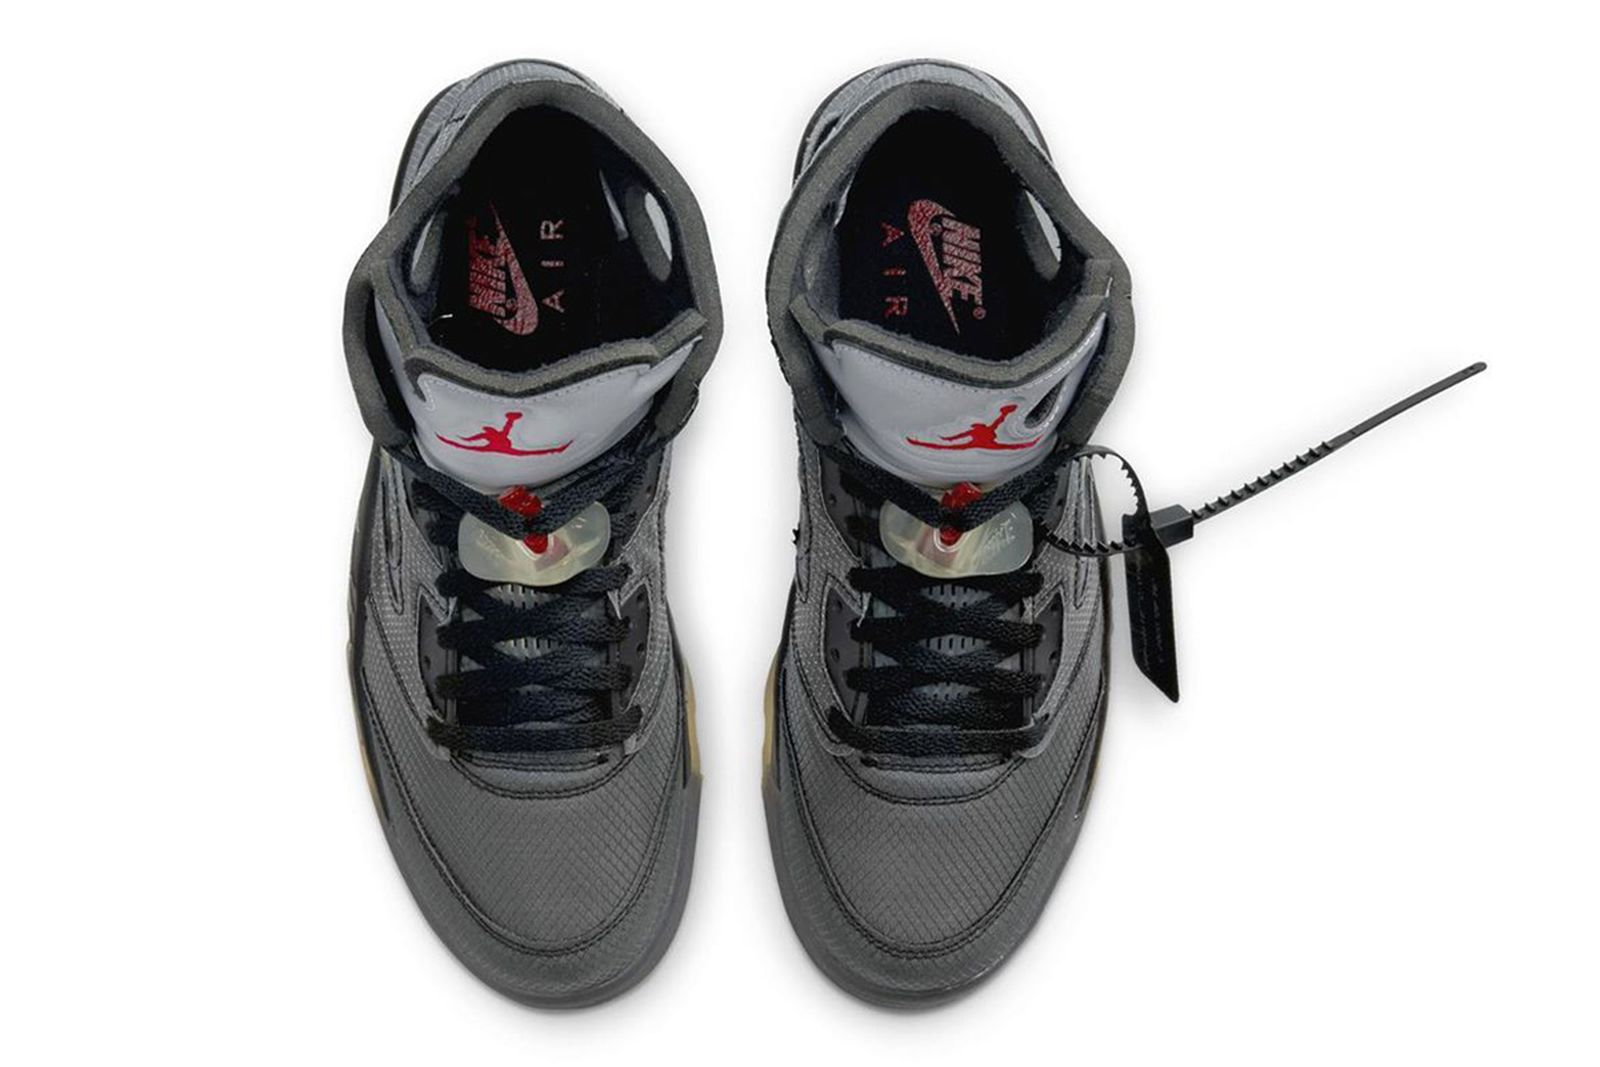 off-white-nike-air-jordan-5-release-date-price-official-product-02